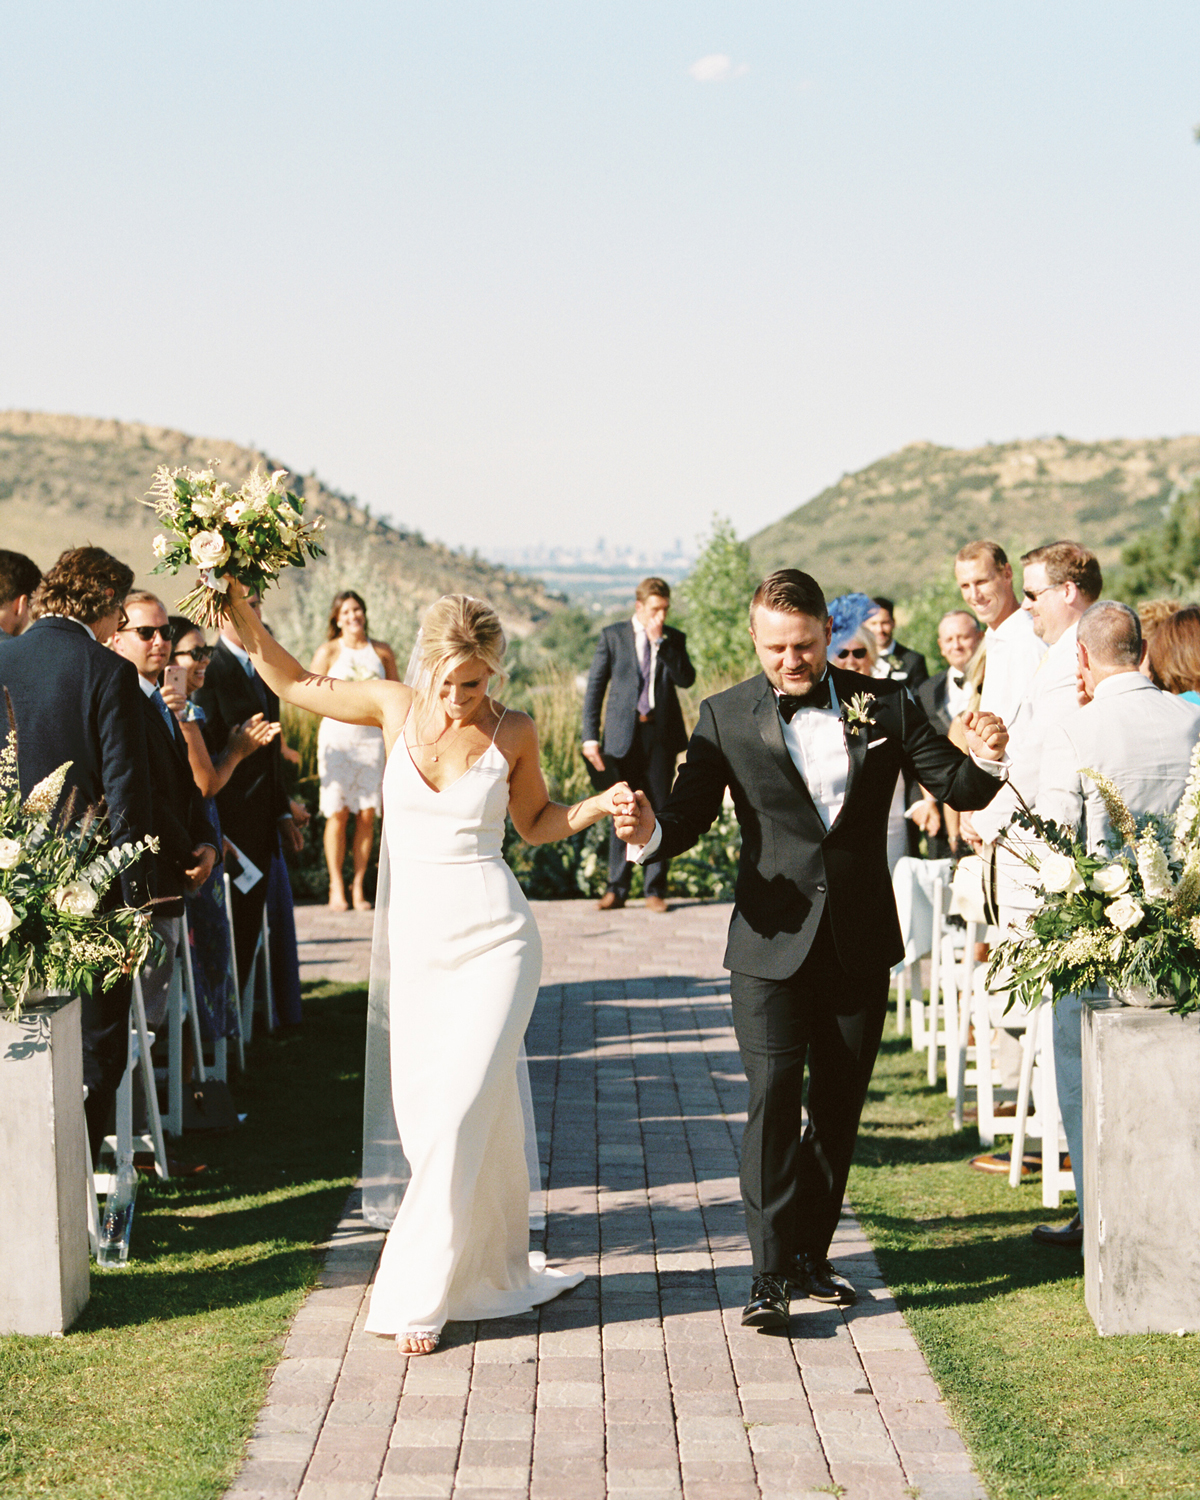 bride and groom dance down aisle during recessional